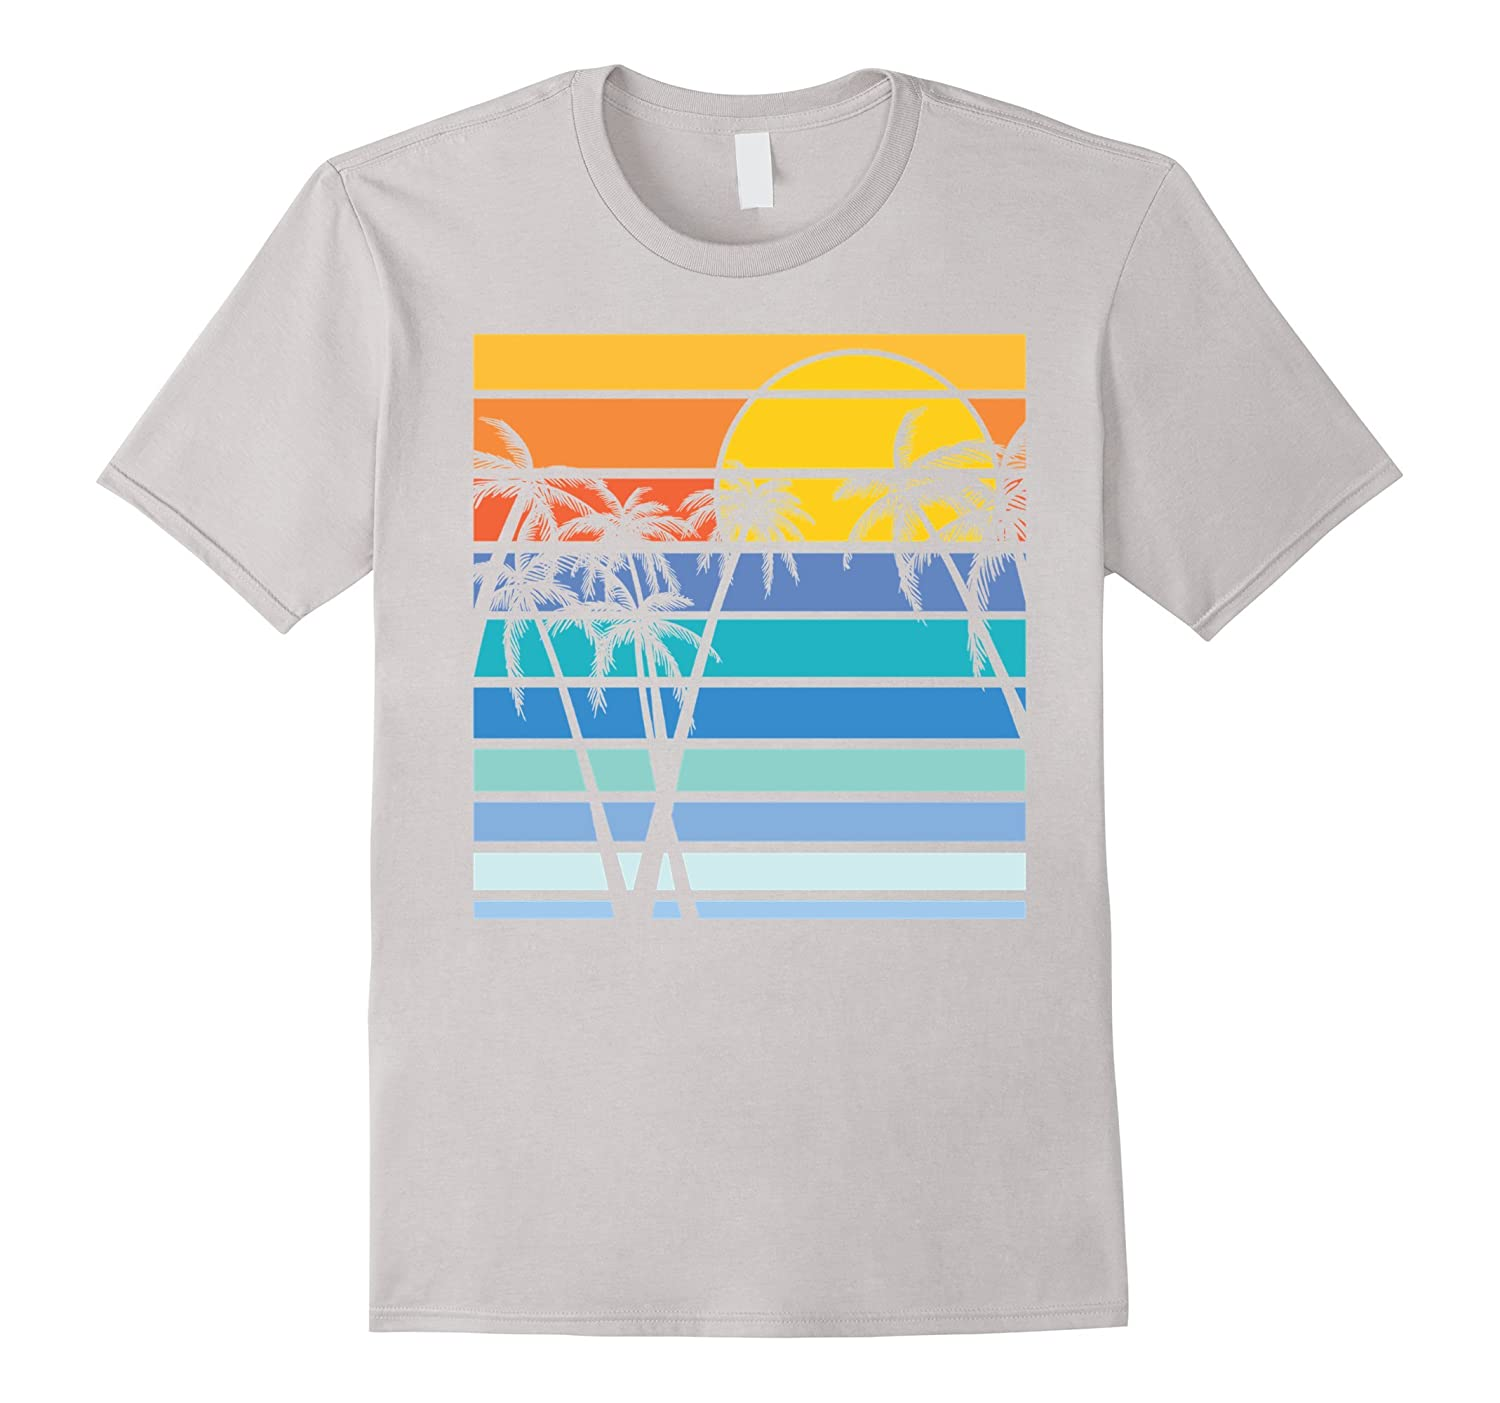 Beach palm tree t shirt for men women youth goatstee for Beach t shirts for men